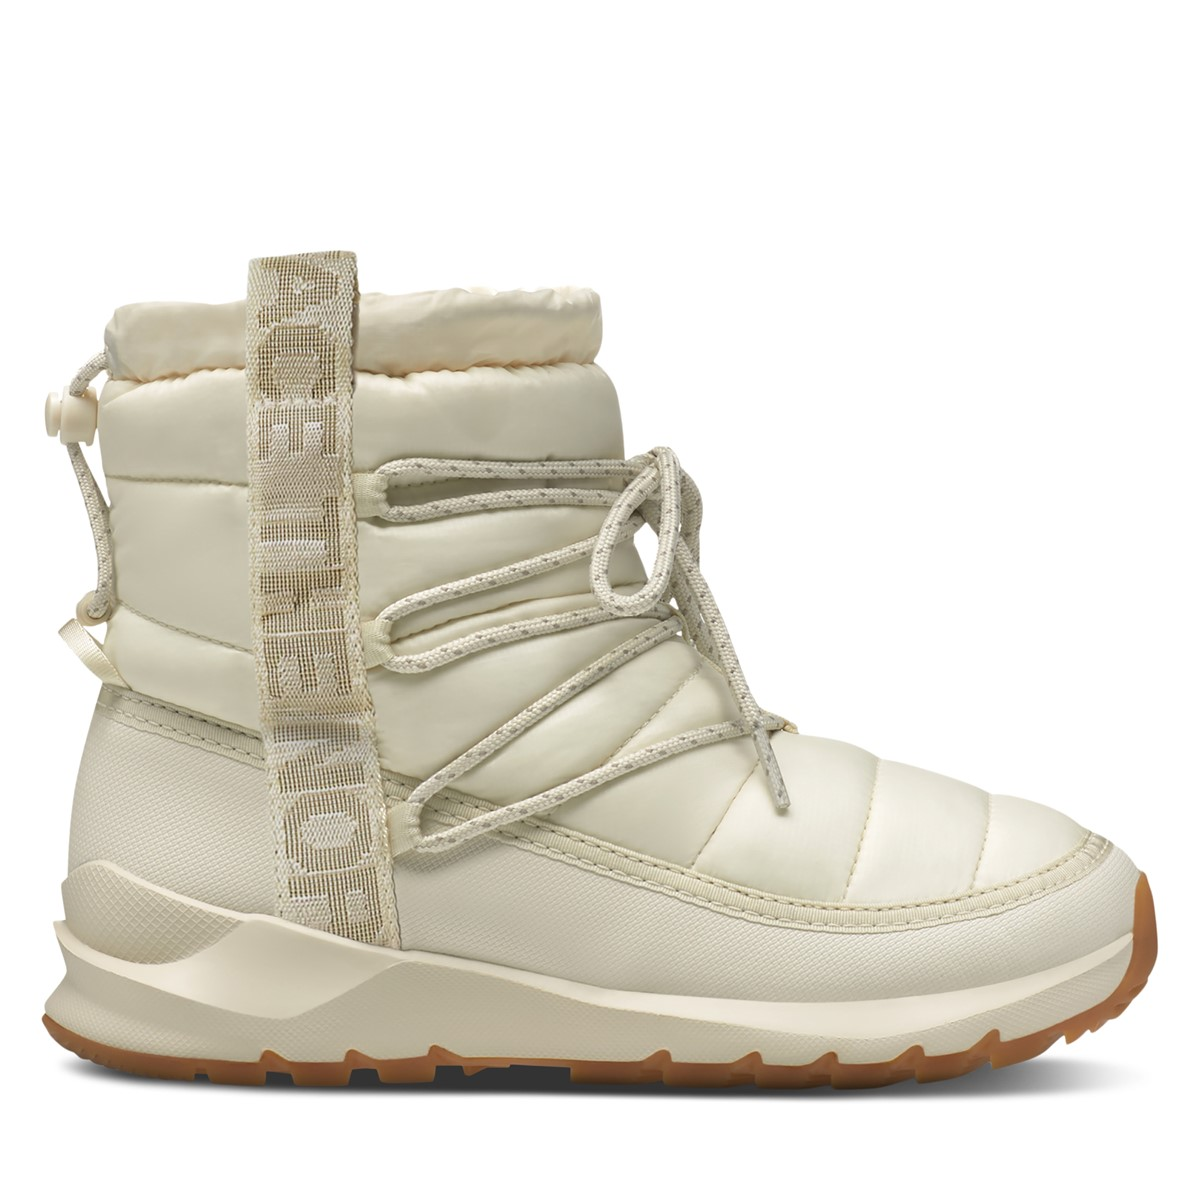 Women's ThermoBall Lace-up Boots in White